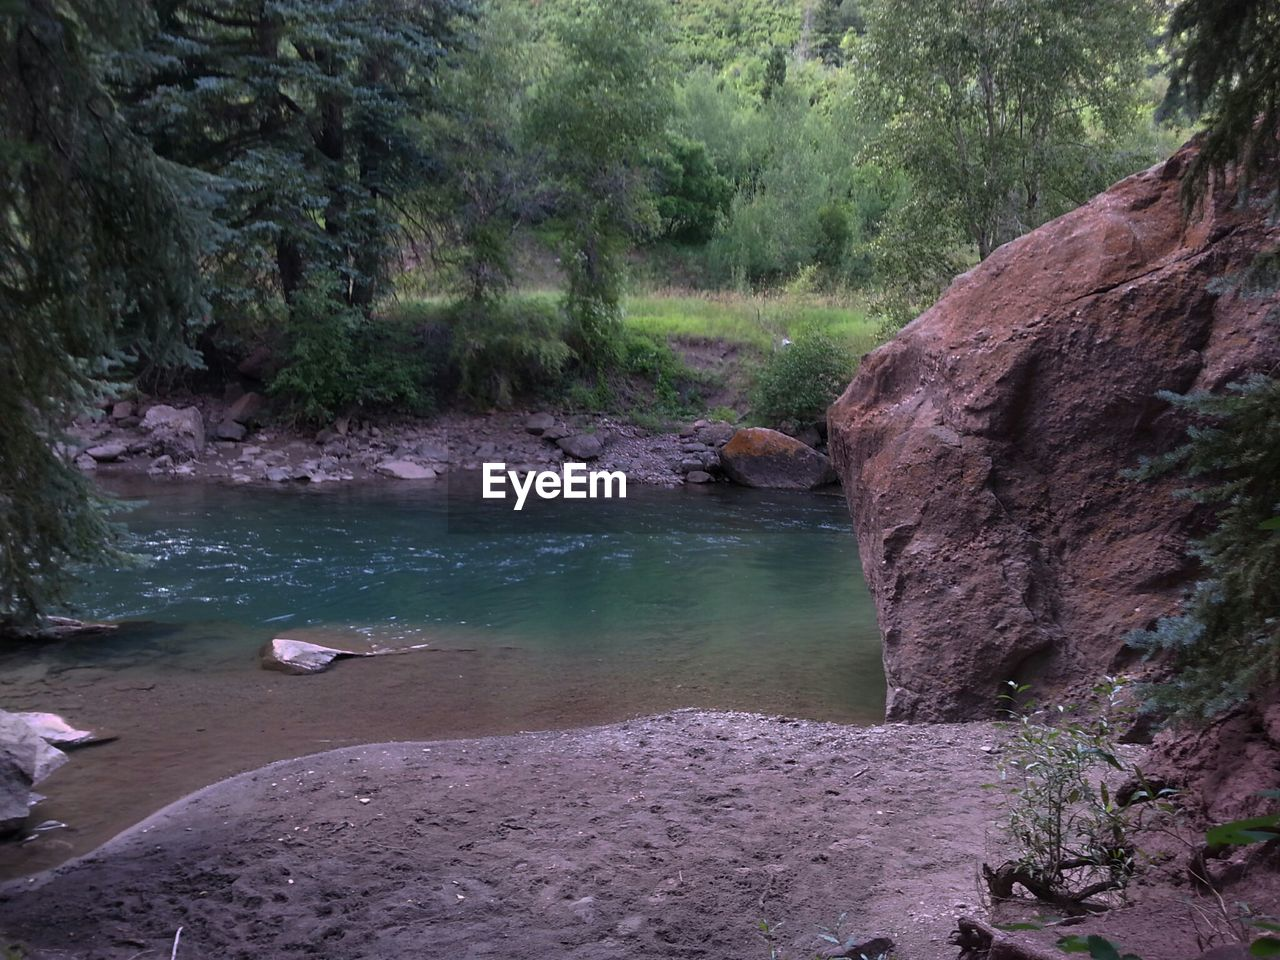 nature, water, rock - object, tree, outdoors, beauty in nature, scenics, no people, day, tranquility, animal themes, bird